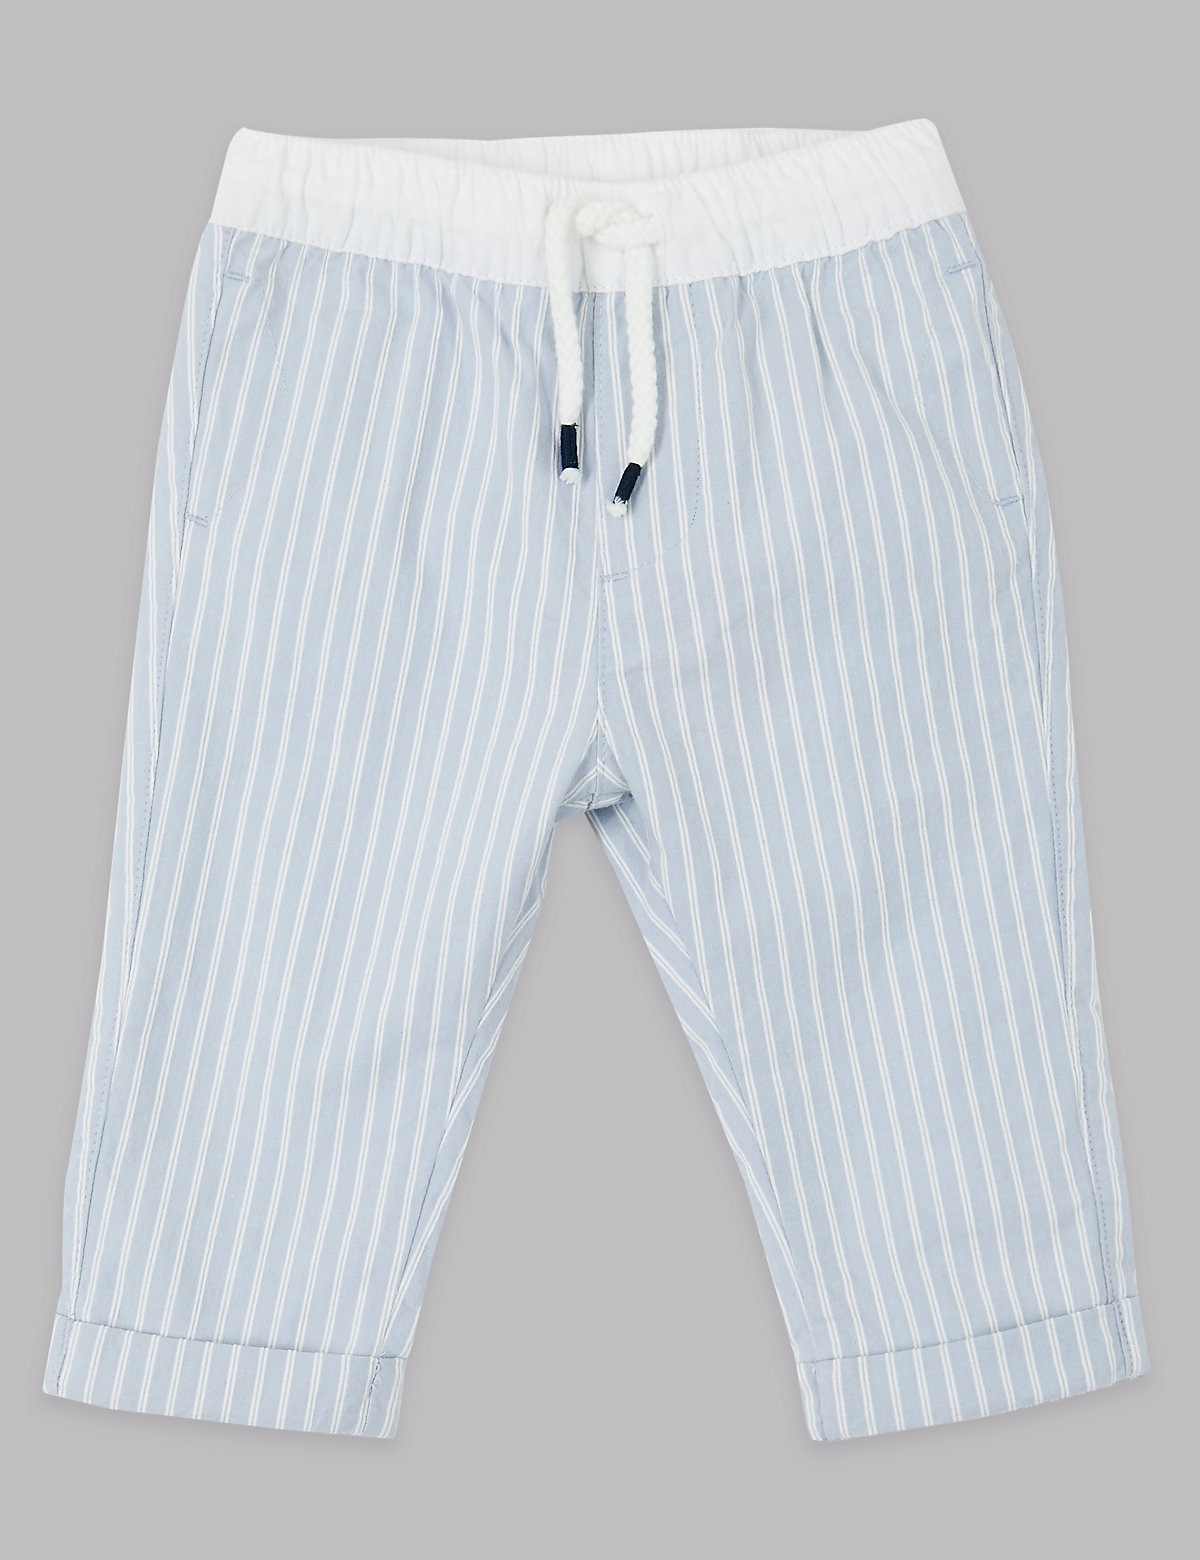 Autograph Cotton Striped Chinos with Stretch